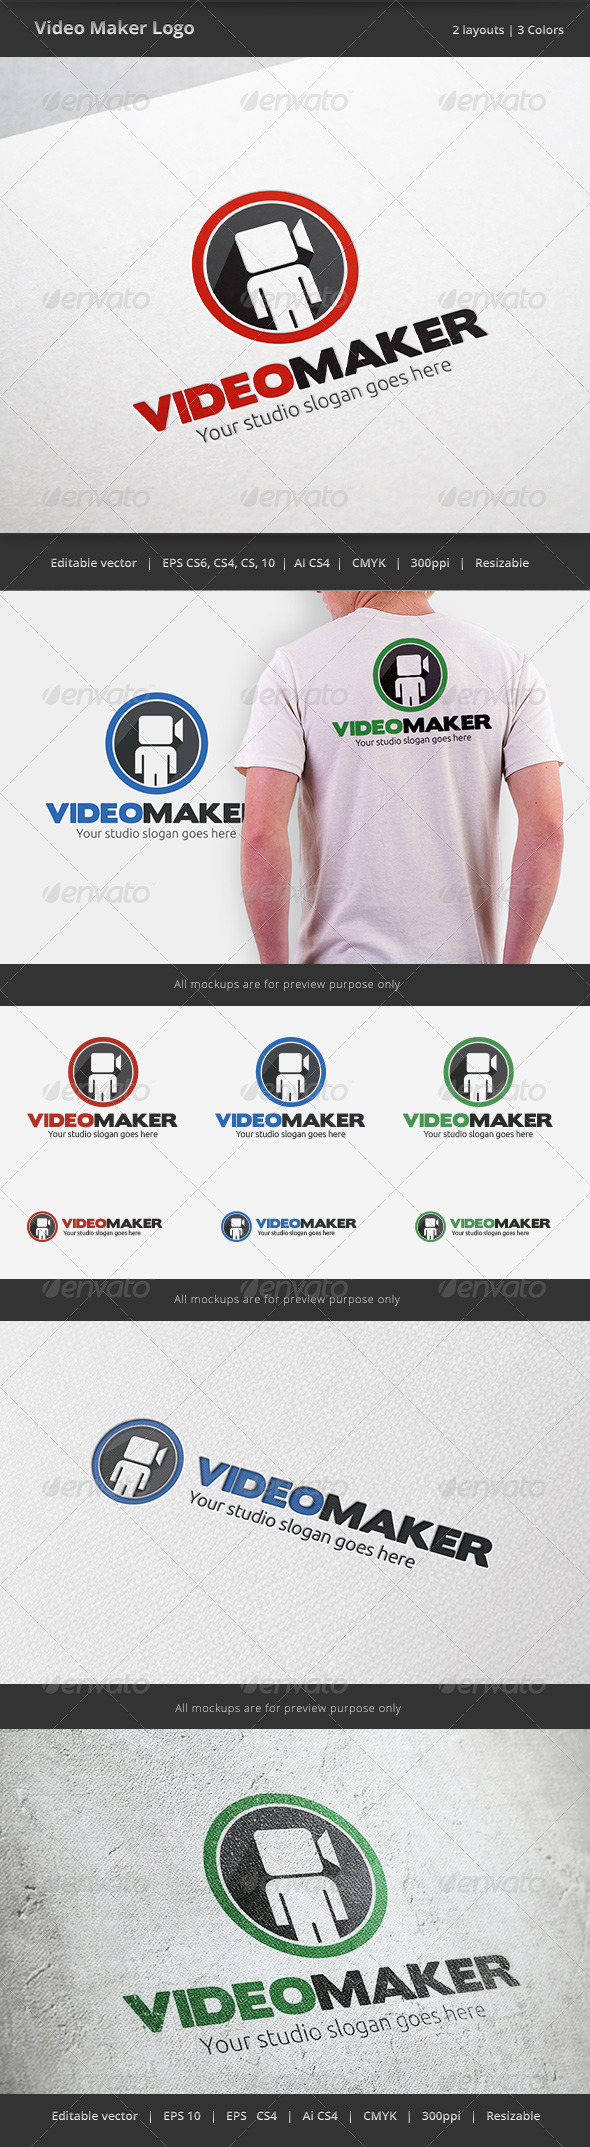 GraphicRiver Video Maker Logo 6379013